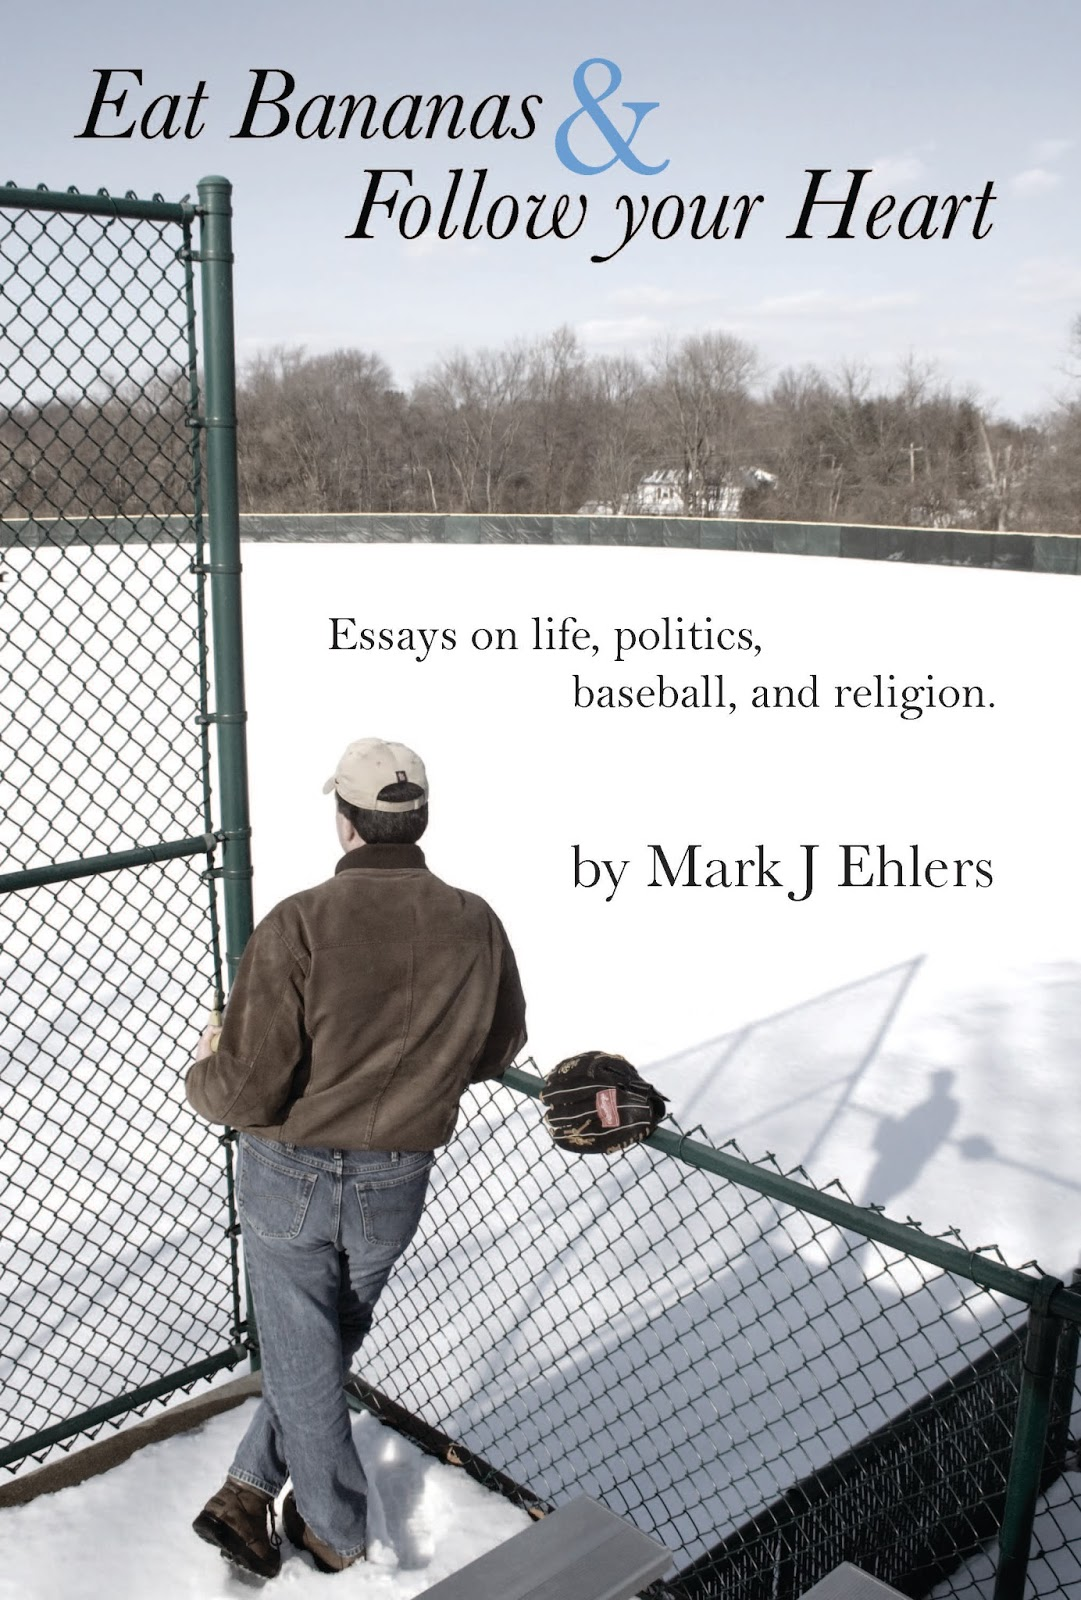 Ehlers On Everything Book Announcement Eat Bananas And Follow  Book Announcement Eat Bananas And Follow Your Heart By Mark J Ehlers Interview Essay Paper also An Essay On Science  Topics For High School Essays